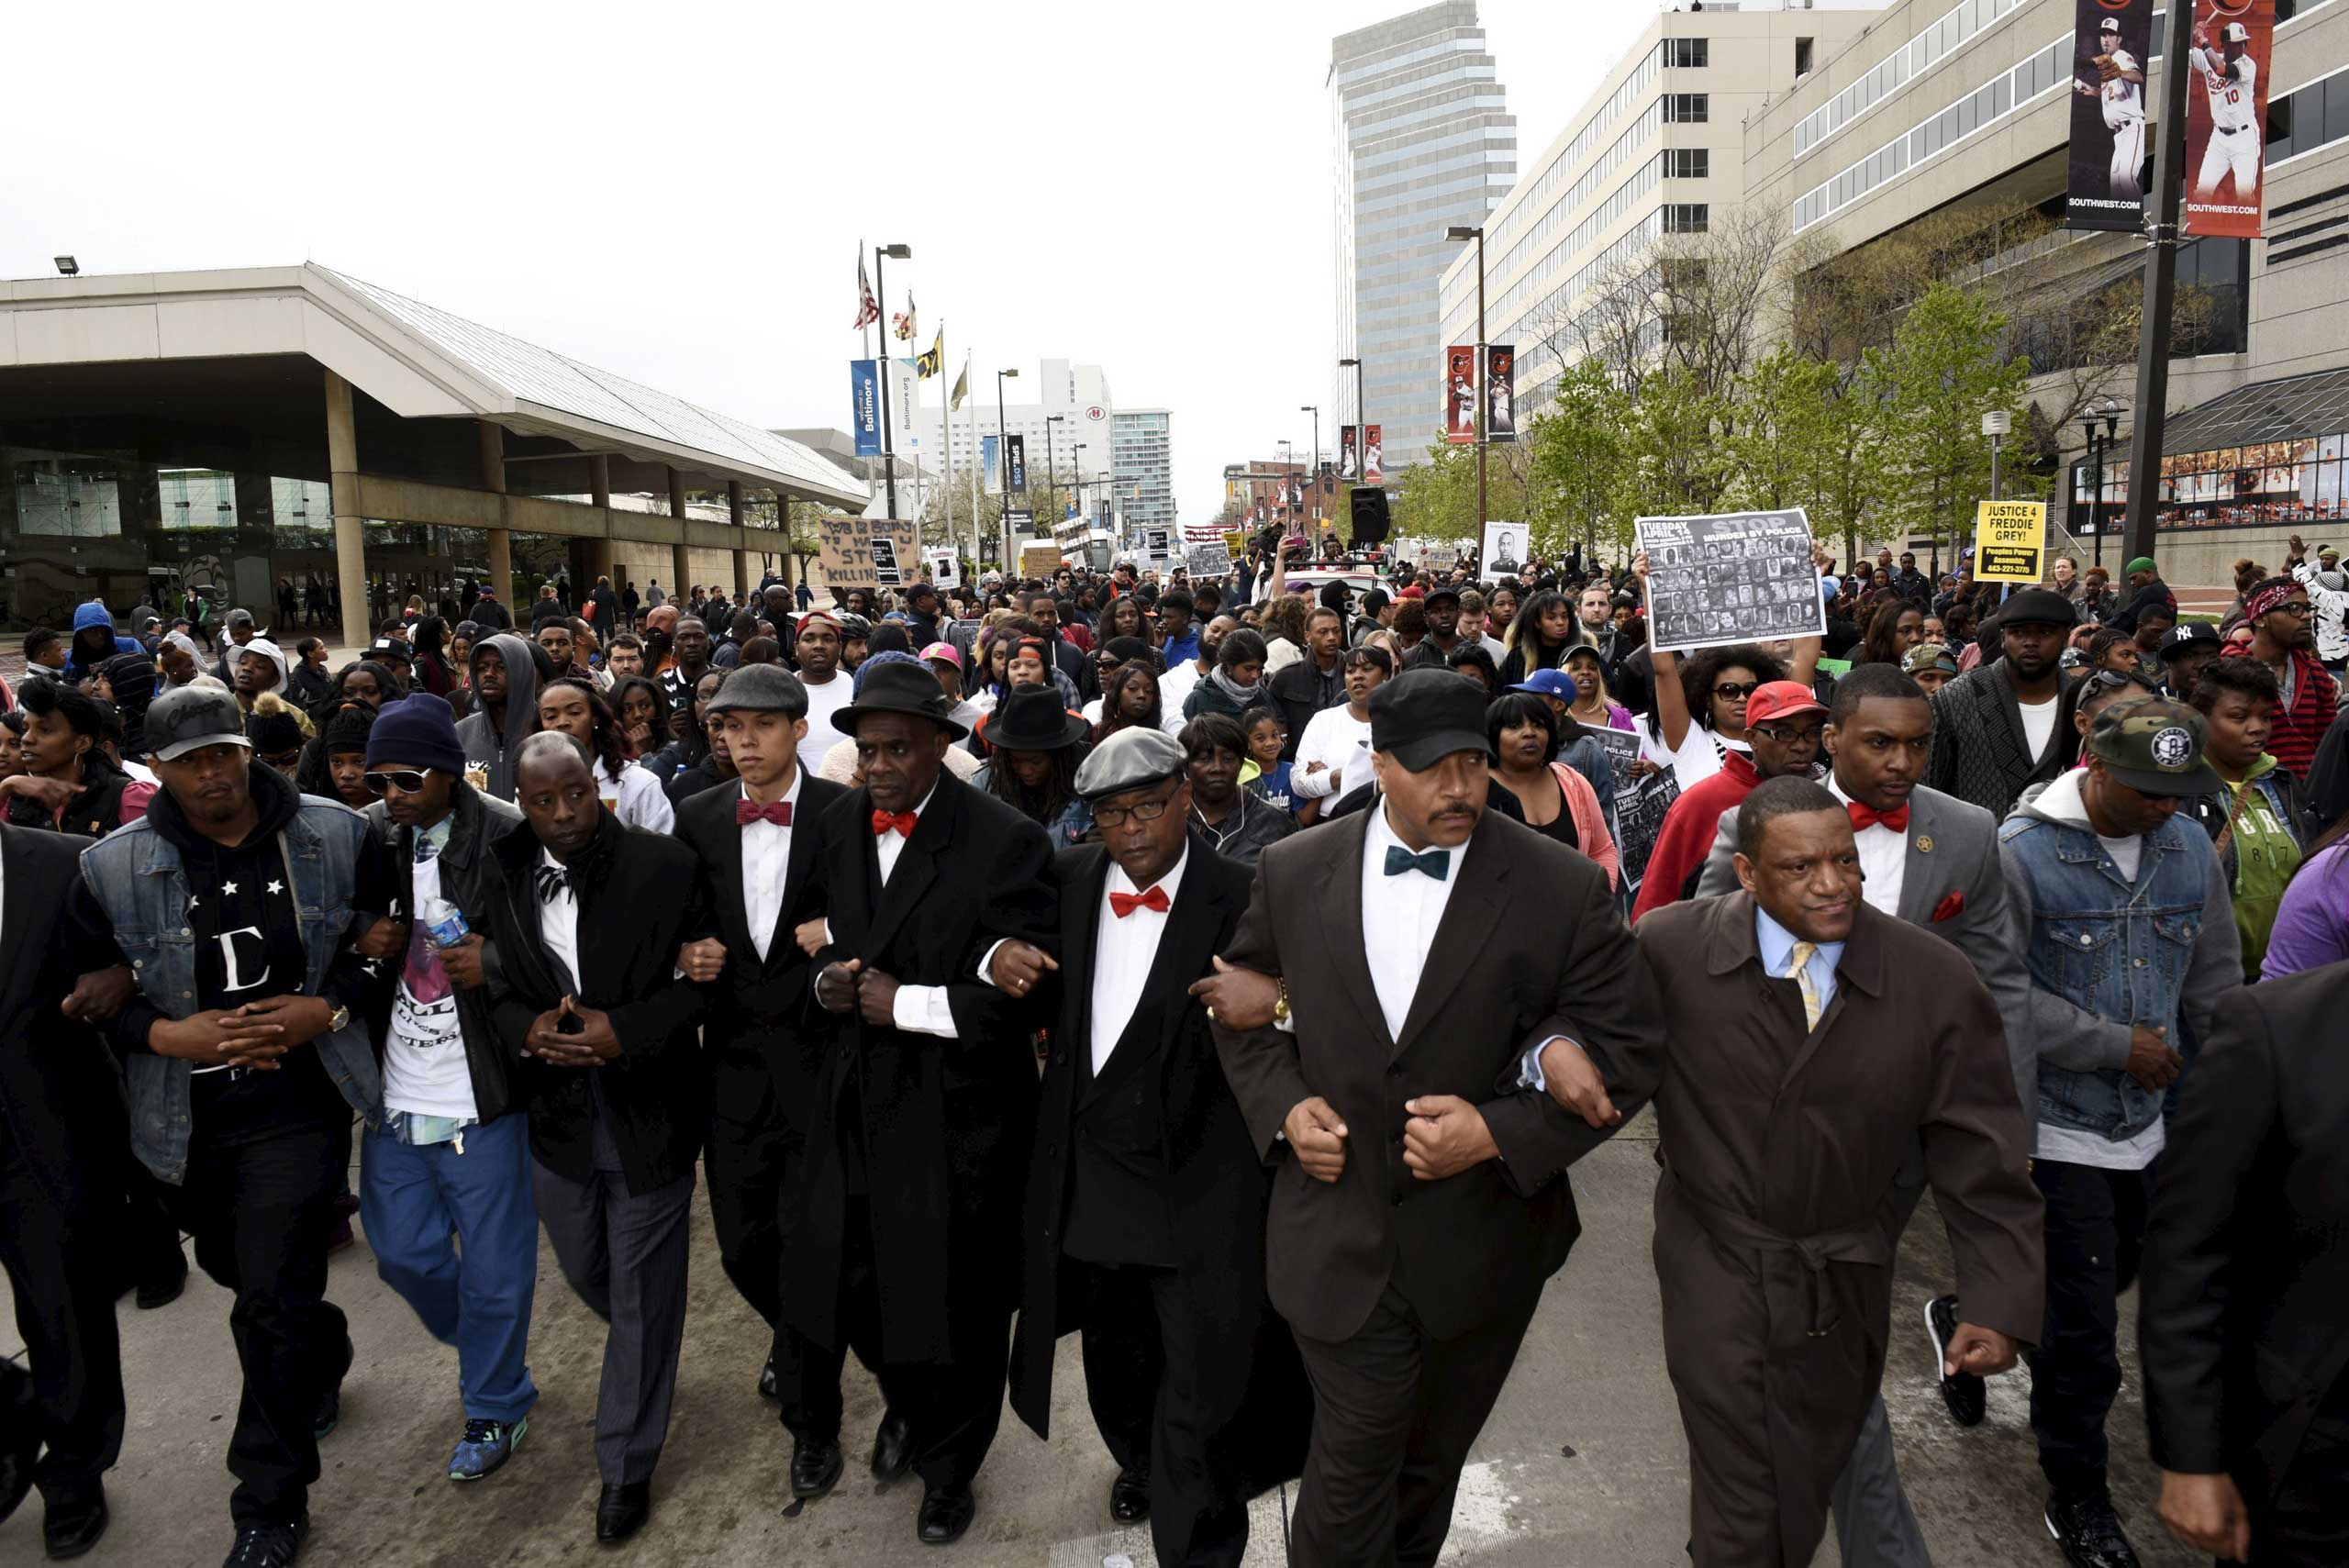 Demonstrators march to City Hall to protest against the death of Freddie Gray in police custody, in Baltimore on April 25, 2015.